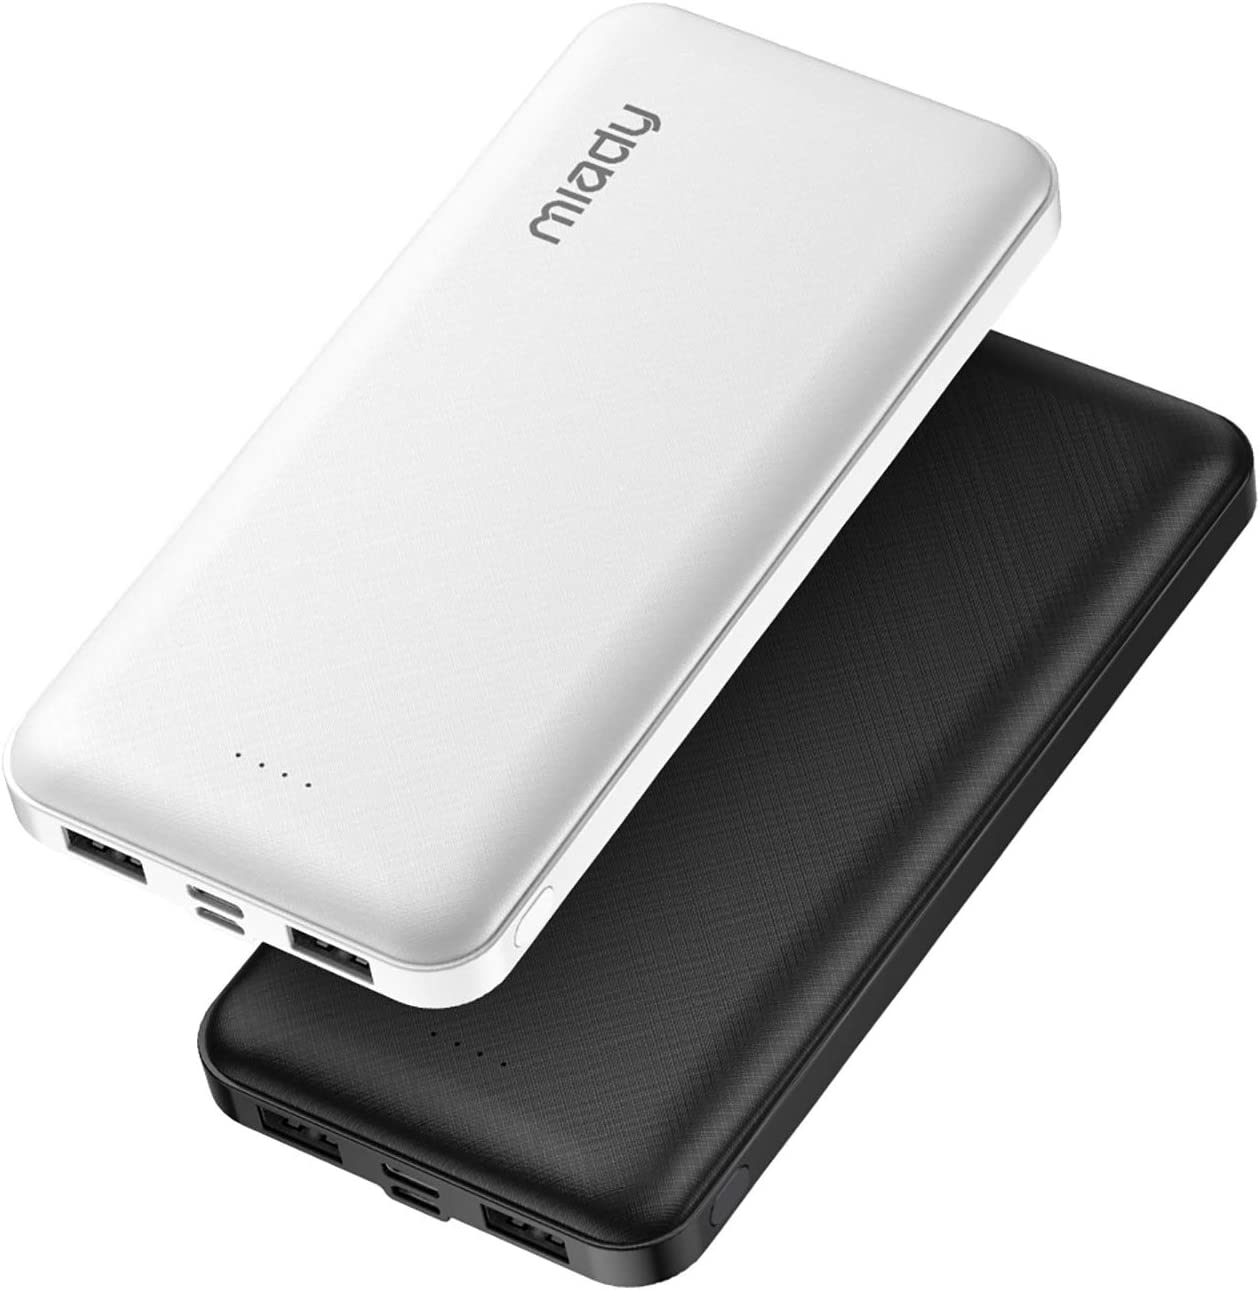 2-Pack Miady 15000mAh Portable Charger, Power Bank/w Two 5V/2A USB Output Ports and USB C Fast Input, Portable Phone Charger Compatible with iPhones, Android Smartphones and More